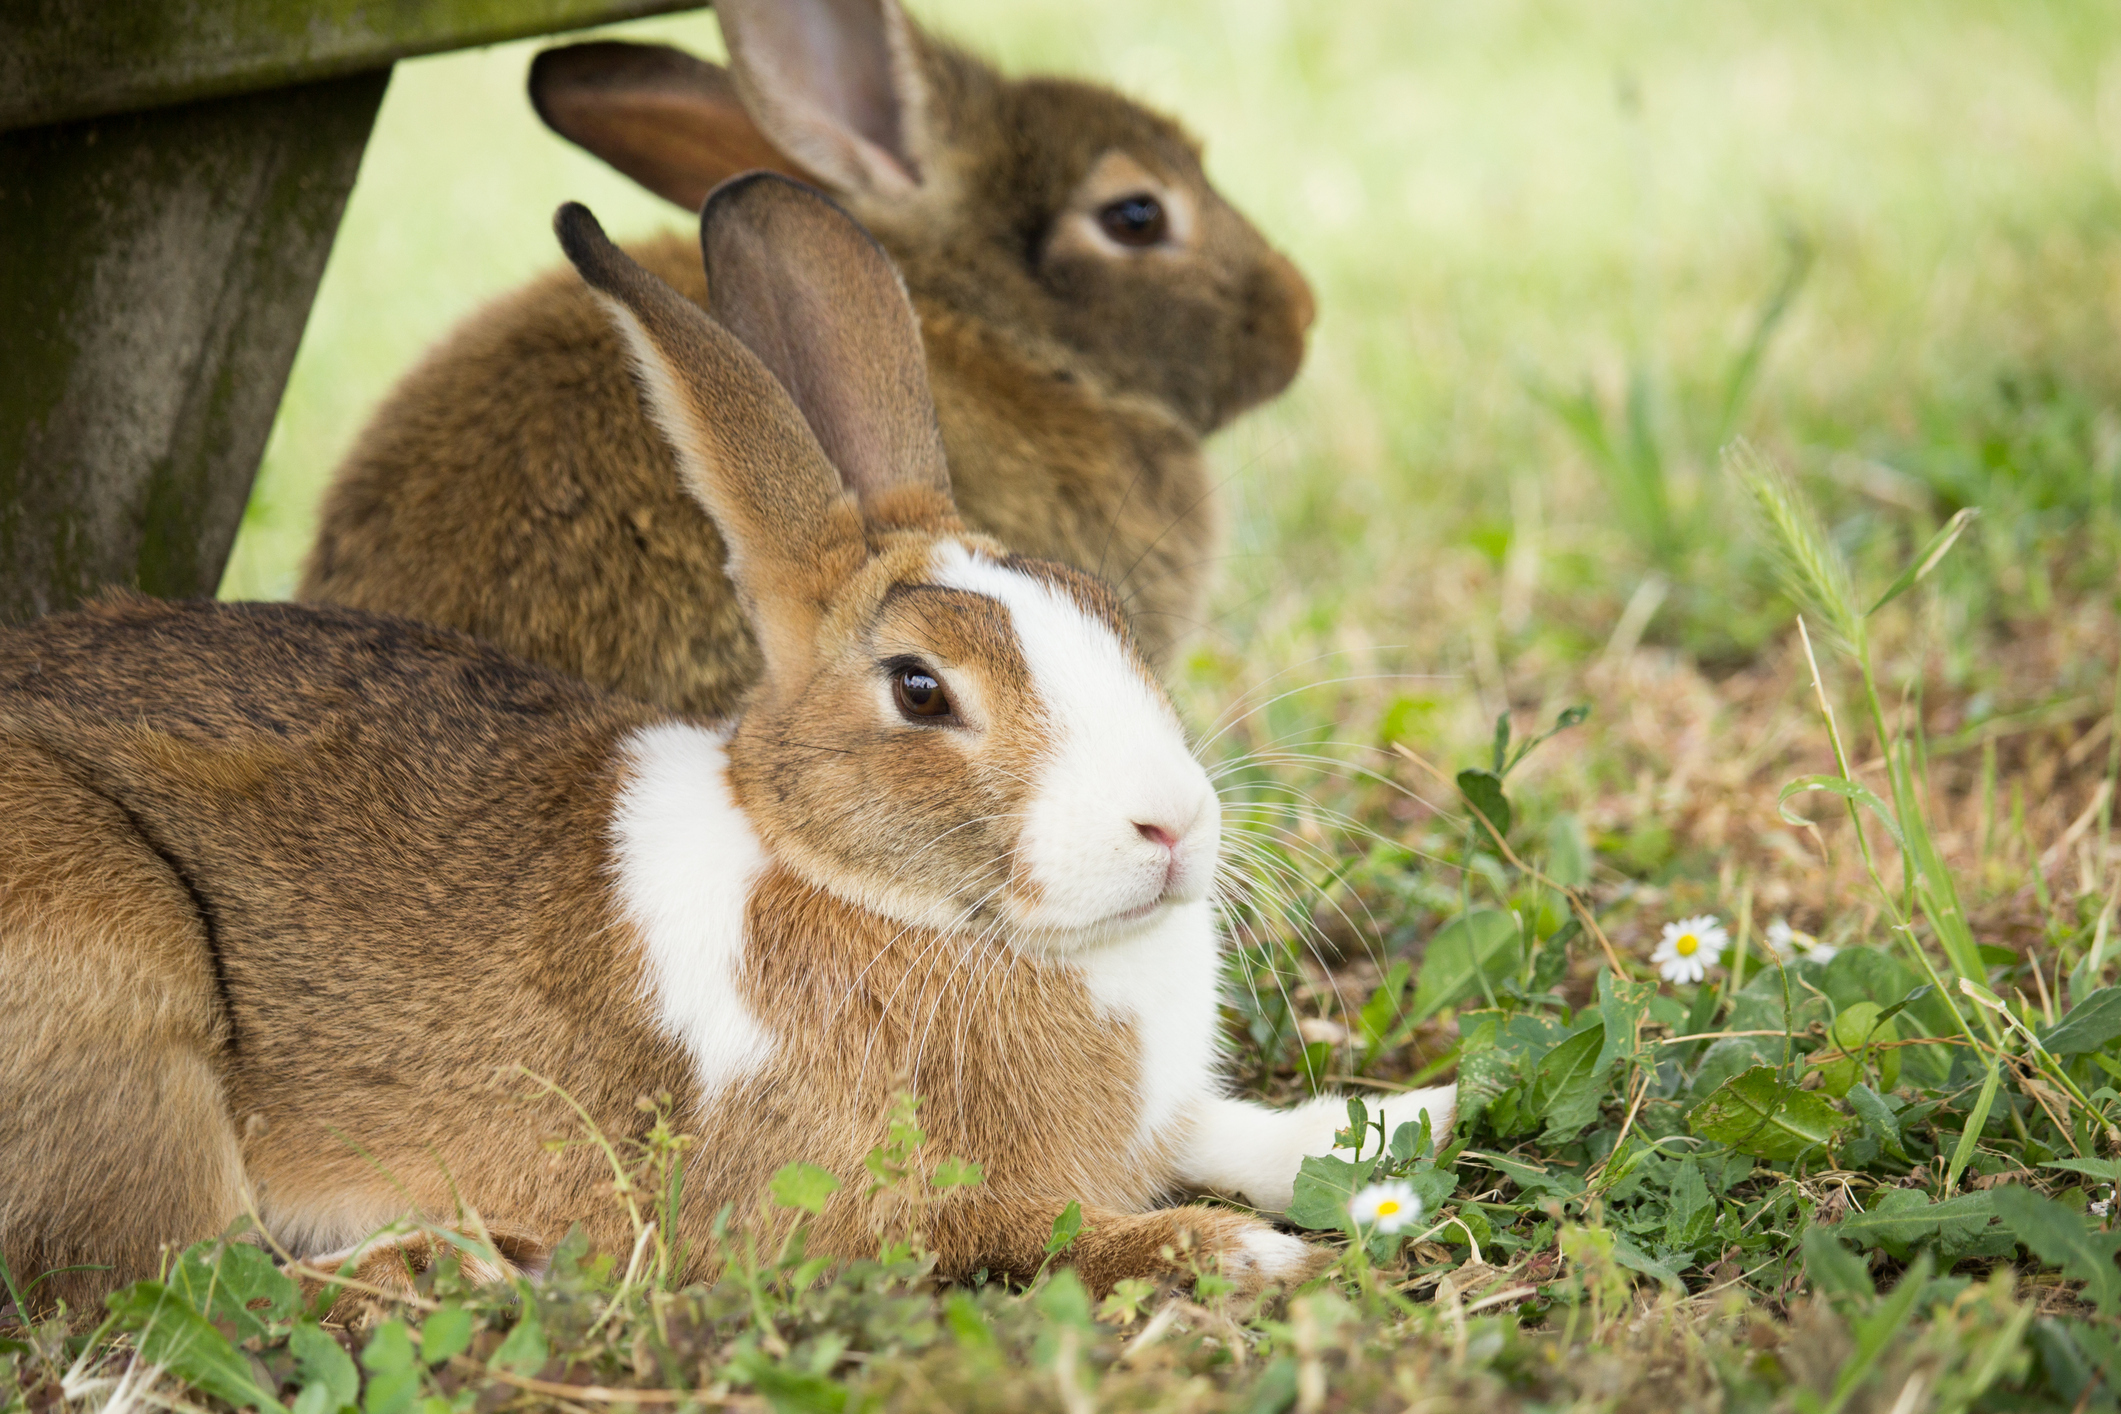 BVA issues advice for Rabbit Awareness Week